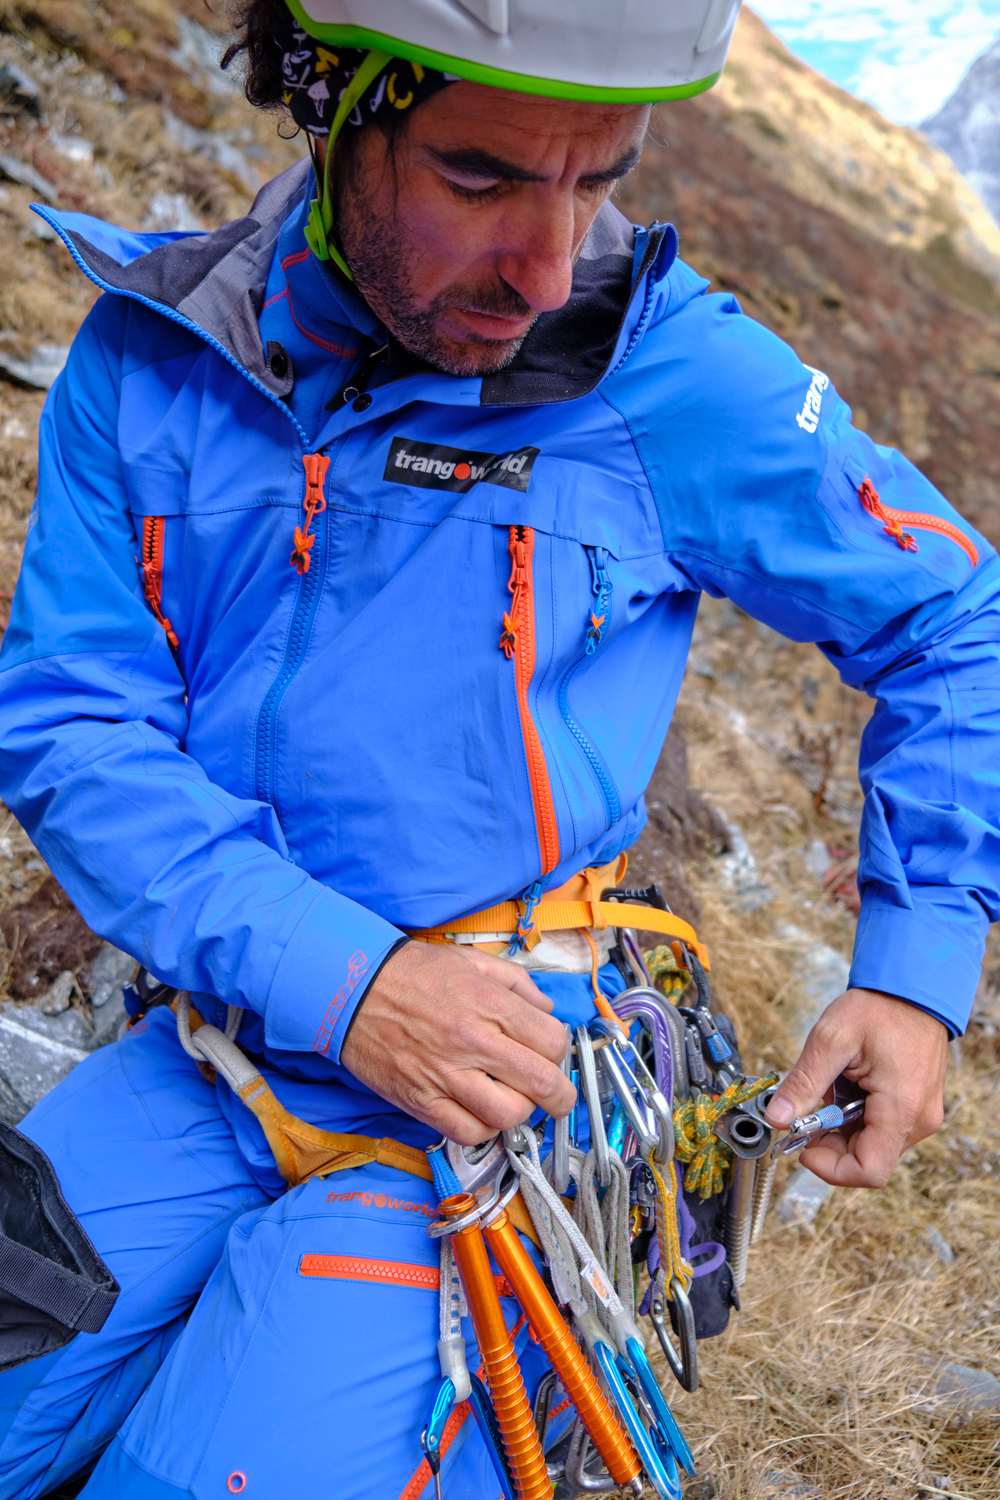 A man arranging in the harness ice climbing equipment.